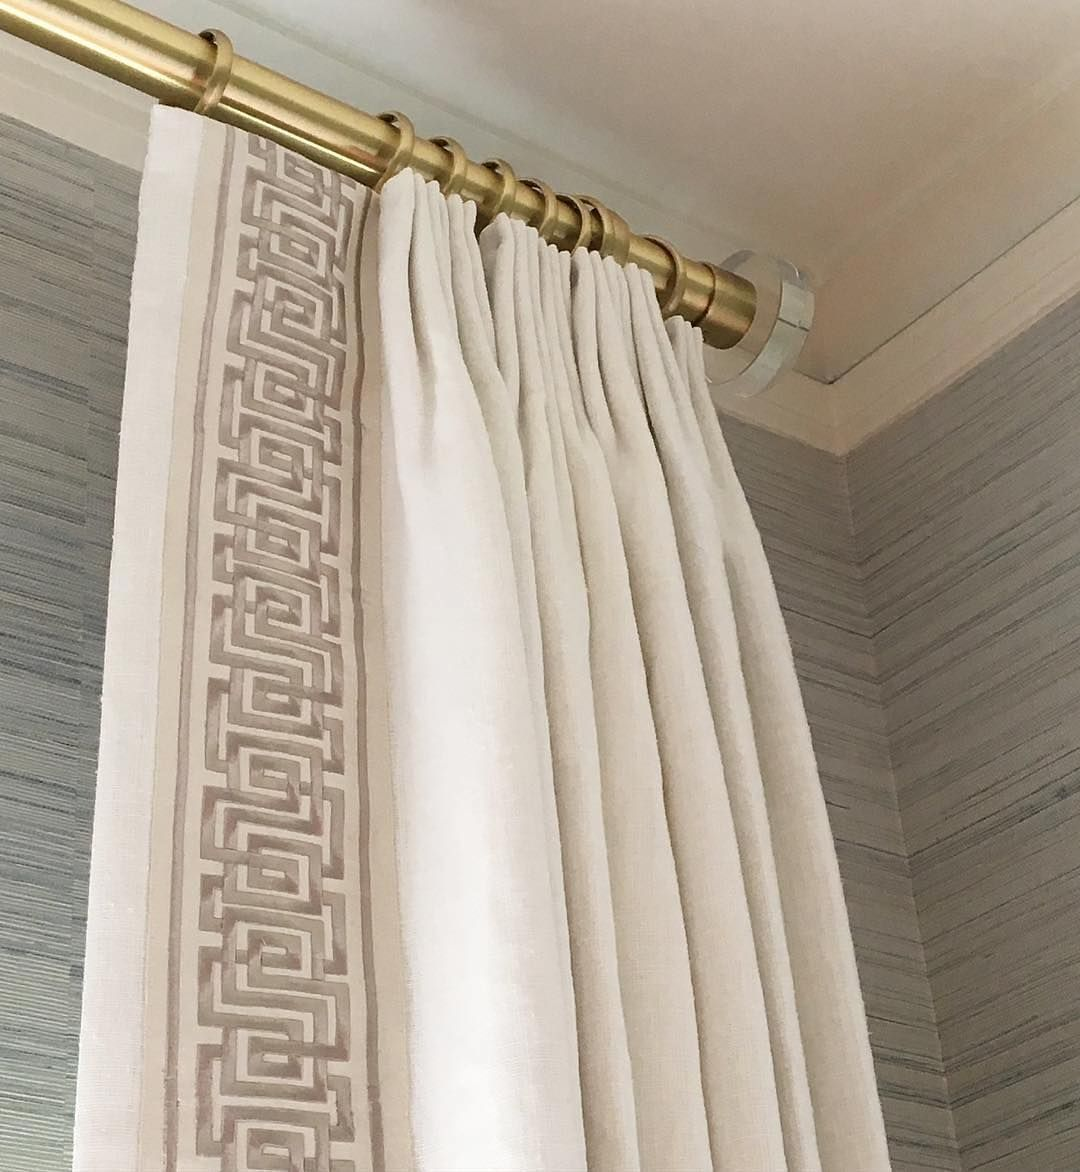 Drapery Panels With Tape Trim At Leading Edge Google Search Custom Curtains Custom Drapes Drapery Treatments